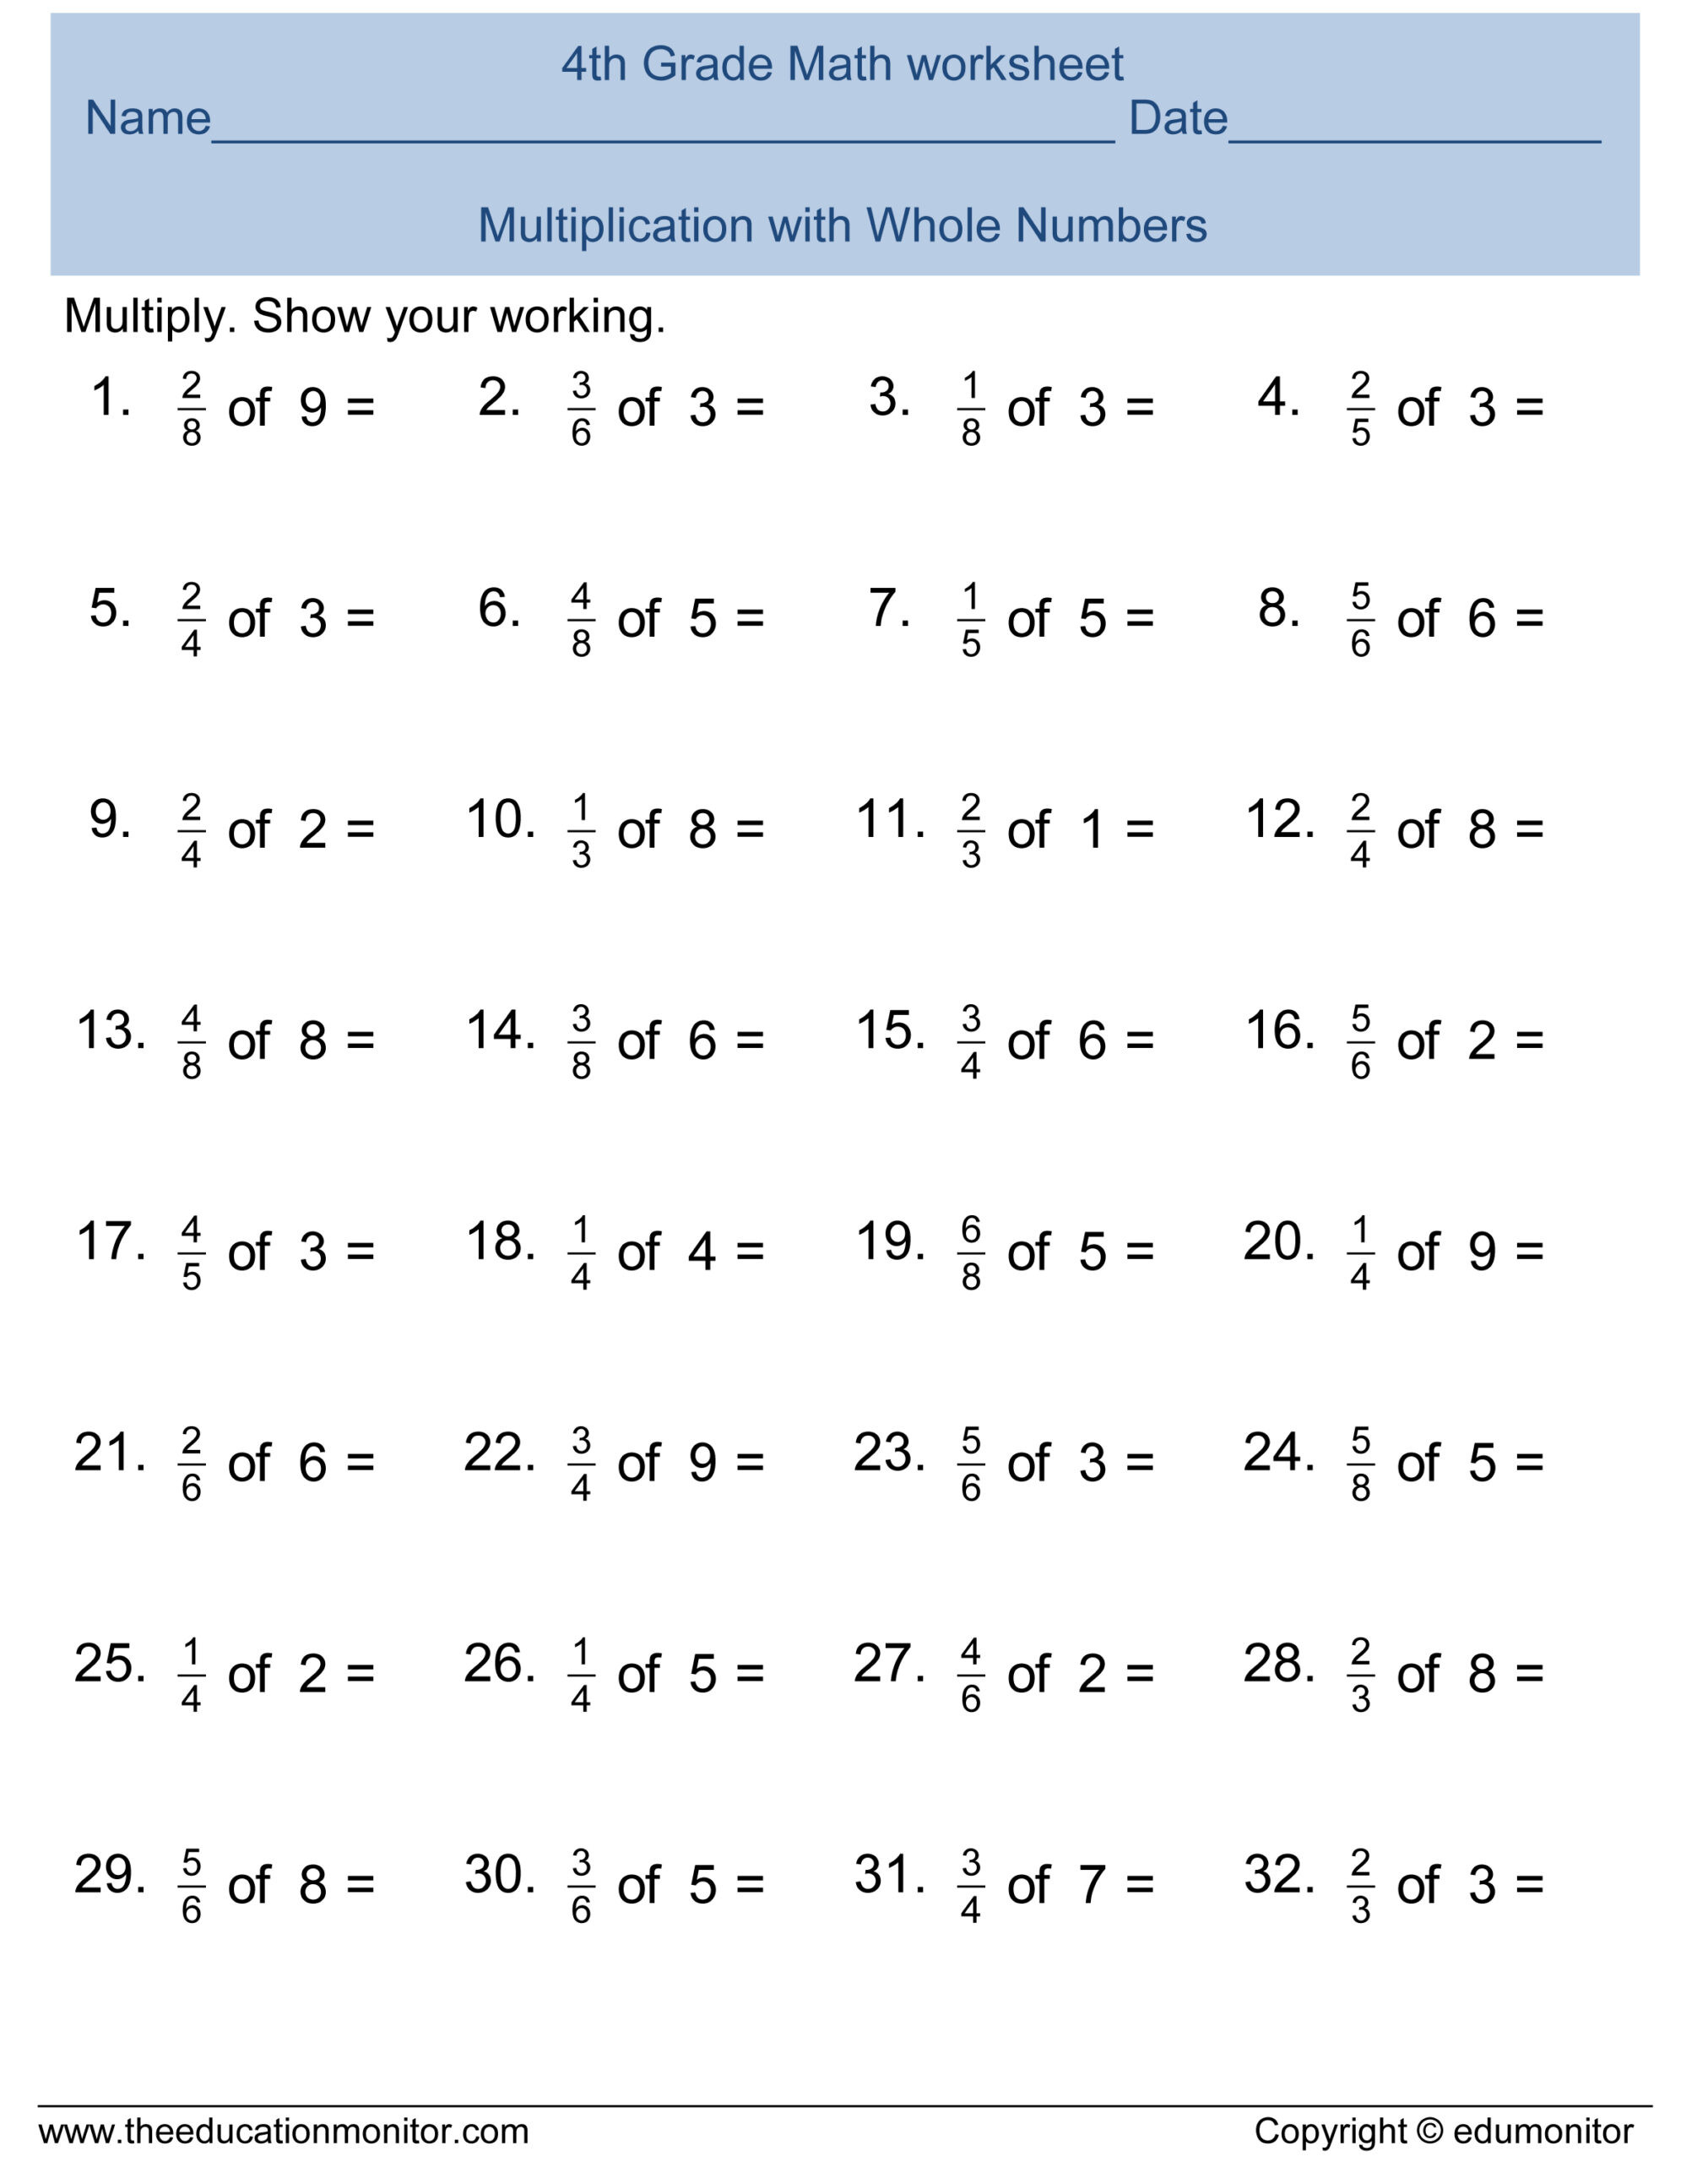 Sequence Worksheets 4th Grade Free 4th Grade Fractions Math Worksheets and Printables